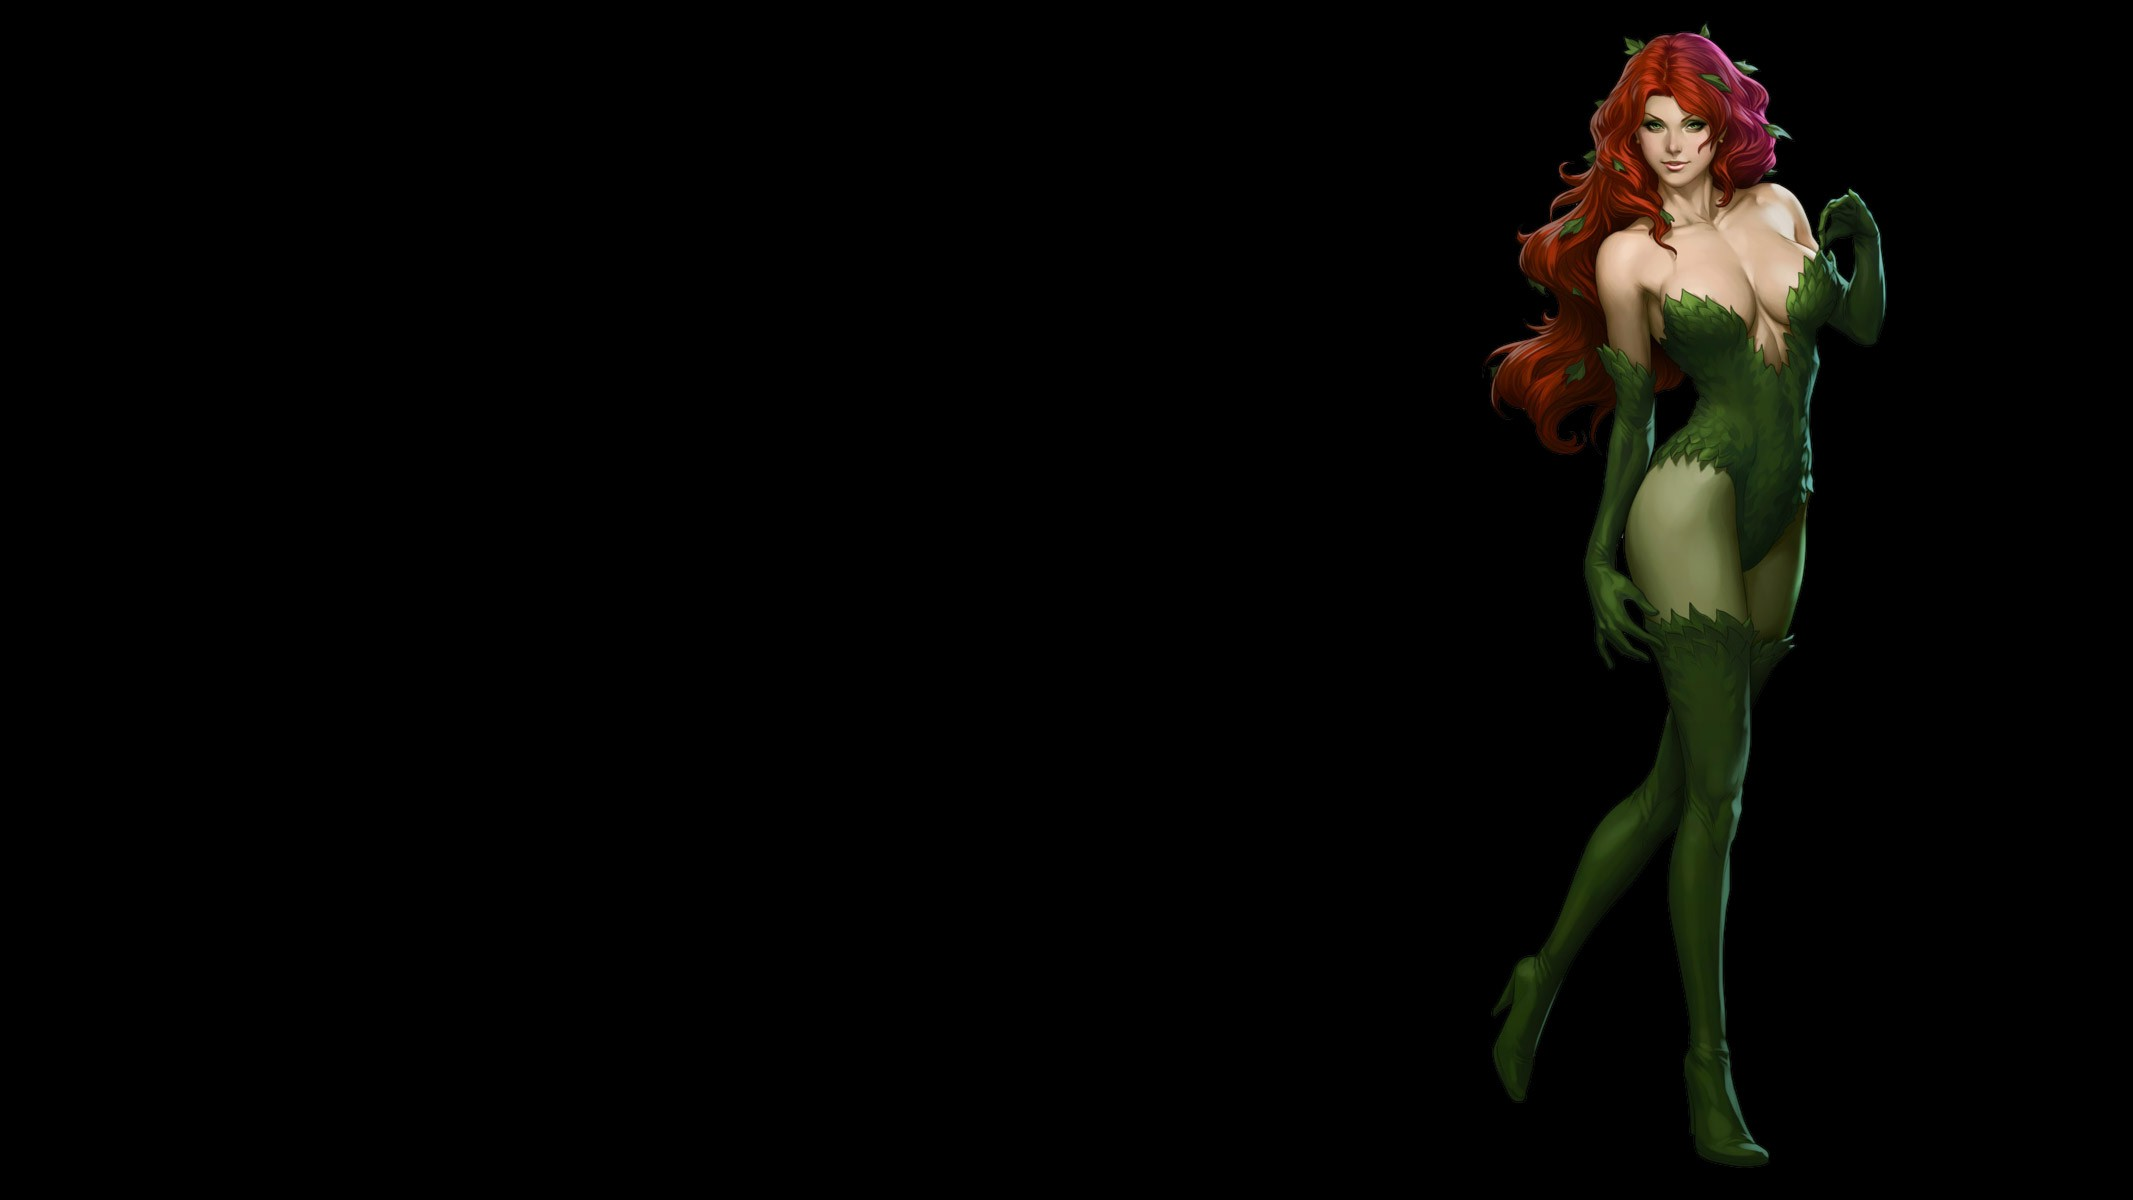 dc comics, poison ivy wallpapers hd / desktop and mobile backgrounds